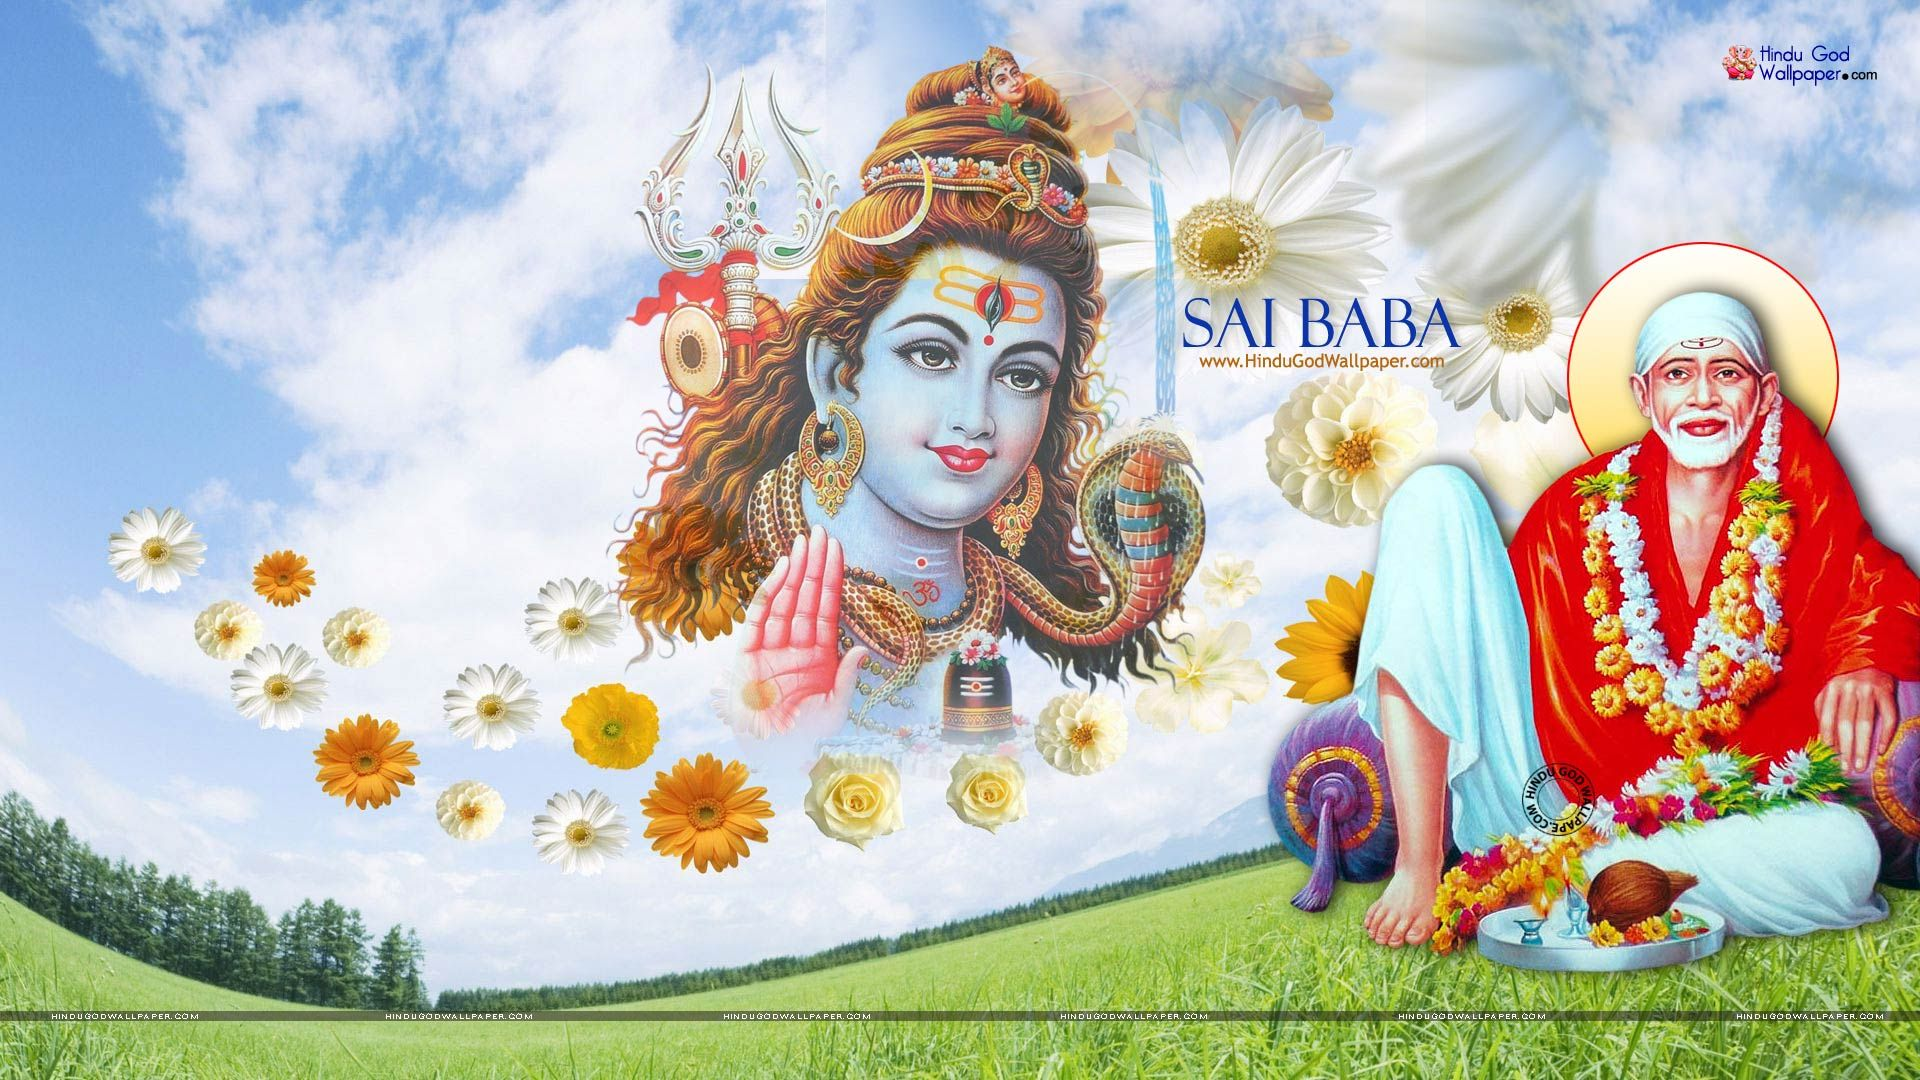 Hd wallpaper sai baba - Sai Baba Hd Wallpaper 1080p Full Size Free Download Sai Baba Wallpapers Pinterest Sai Baba And Wallpaper